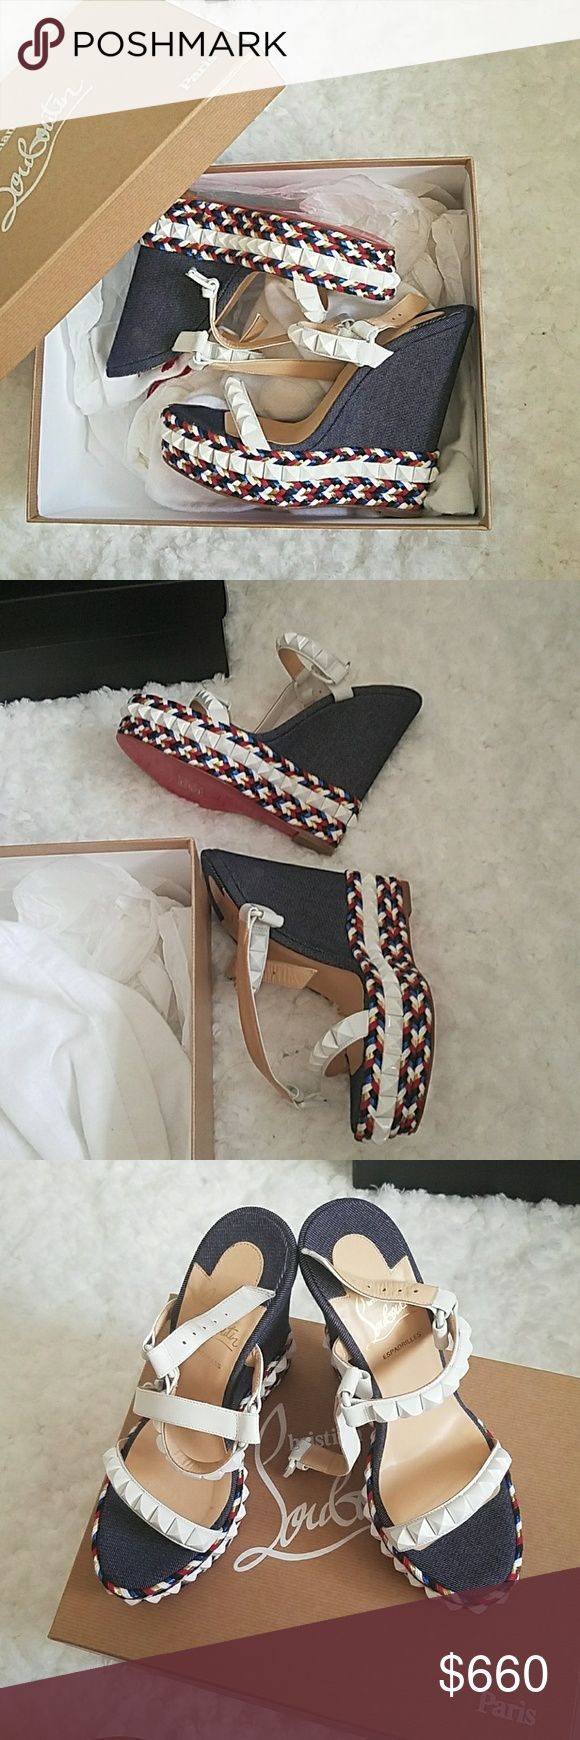 Christian louboutin  wedge Brand New Never worn Comes with box and dust bags Save up to 70% compared to department store prices seen at Bloomingdales, Saks, Nordstrom, and ... Christian Louboutin Shoes Espadrilles